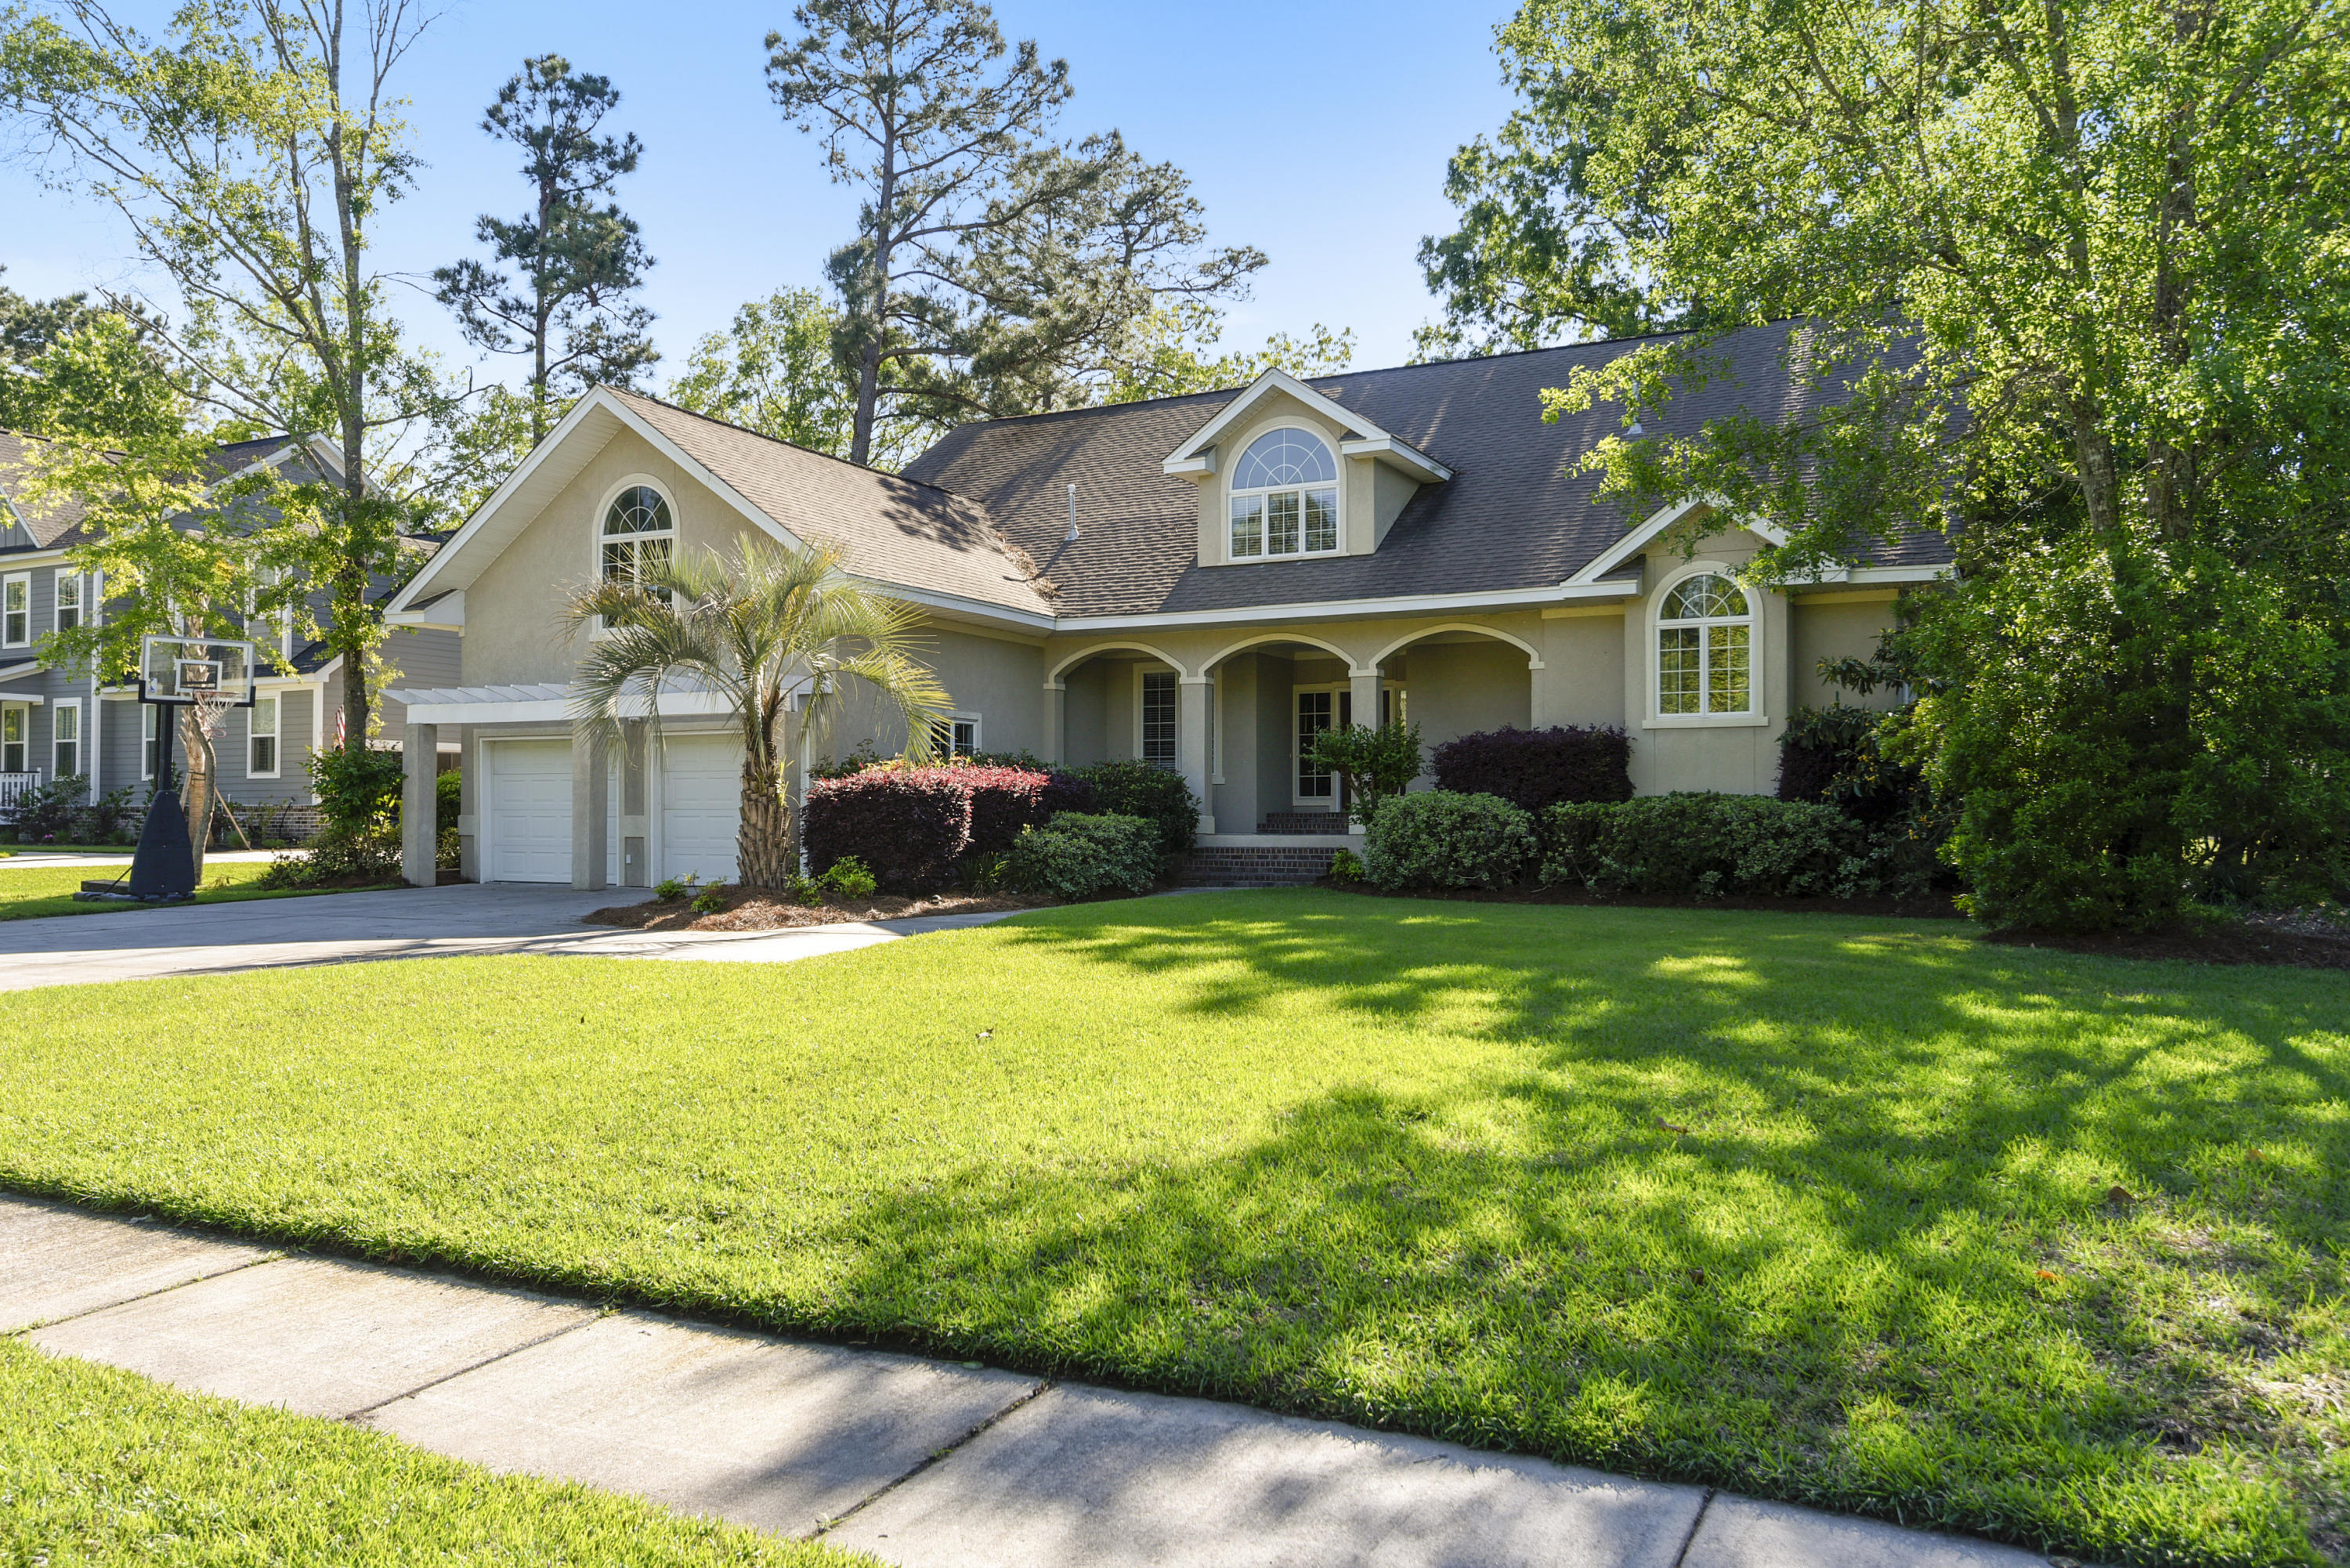 Coosaw Creek Country Club Homes For Sale - 8855 Fairway Woods, North Charleston, SC - 9